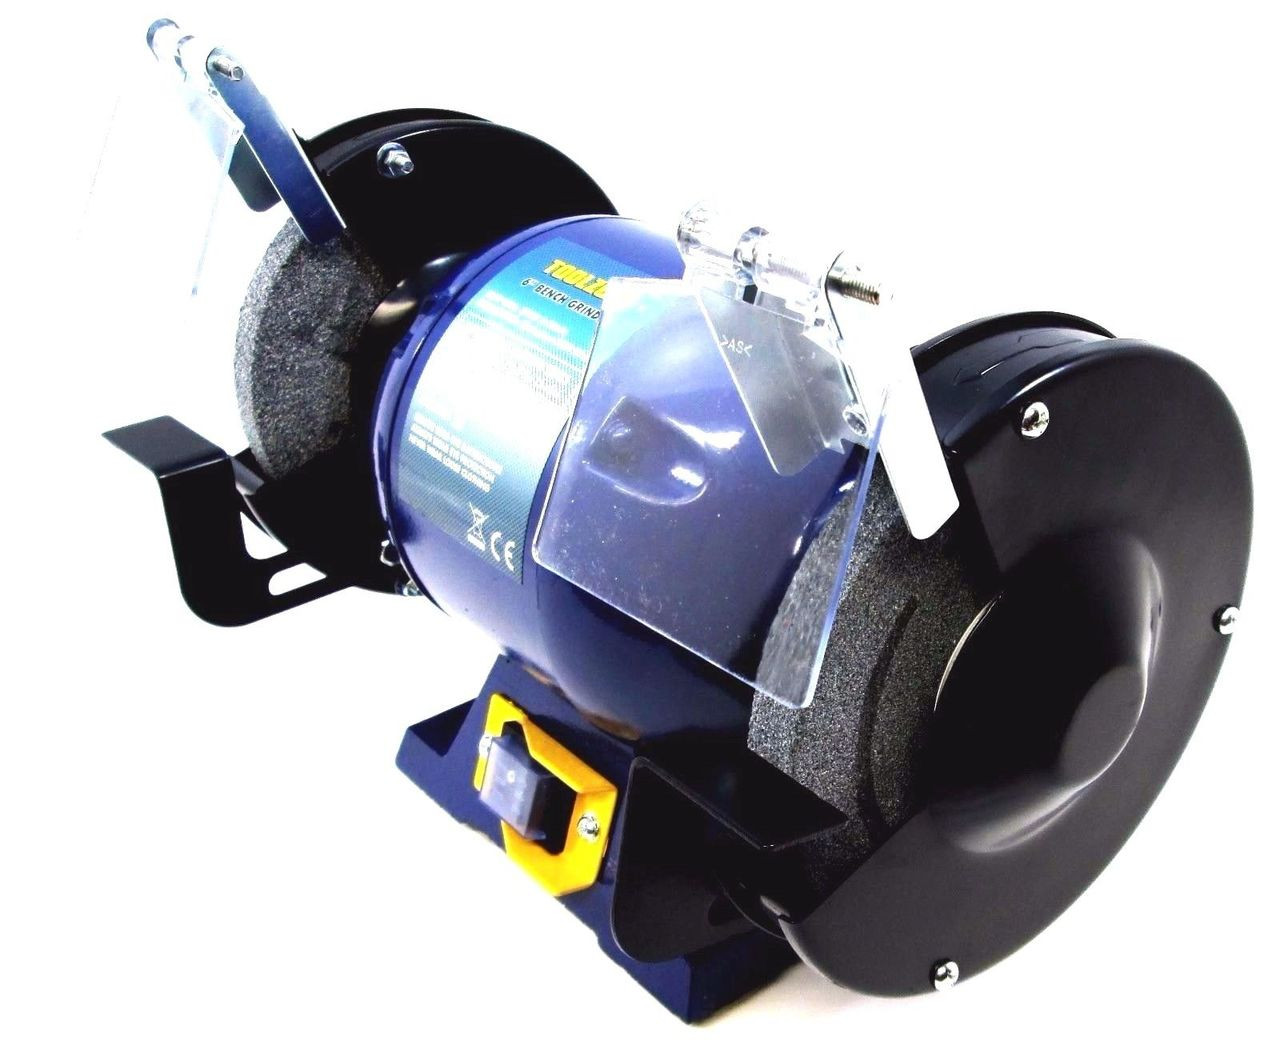 Marvelous 150Mm 6 Inch 370W Bench Grinder Electric Twin Wheel Metal Grinding Stone Pw057 Caraccident5 Cool Chair Designs And Ideas Caraccident5Info